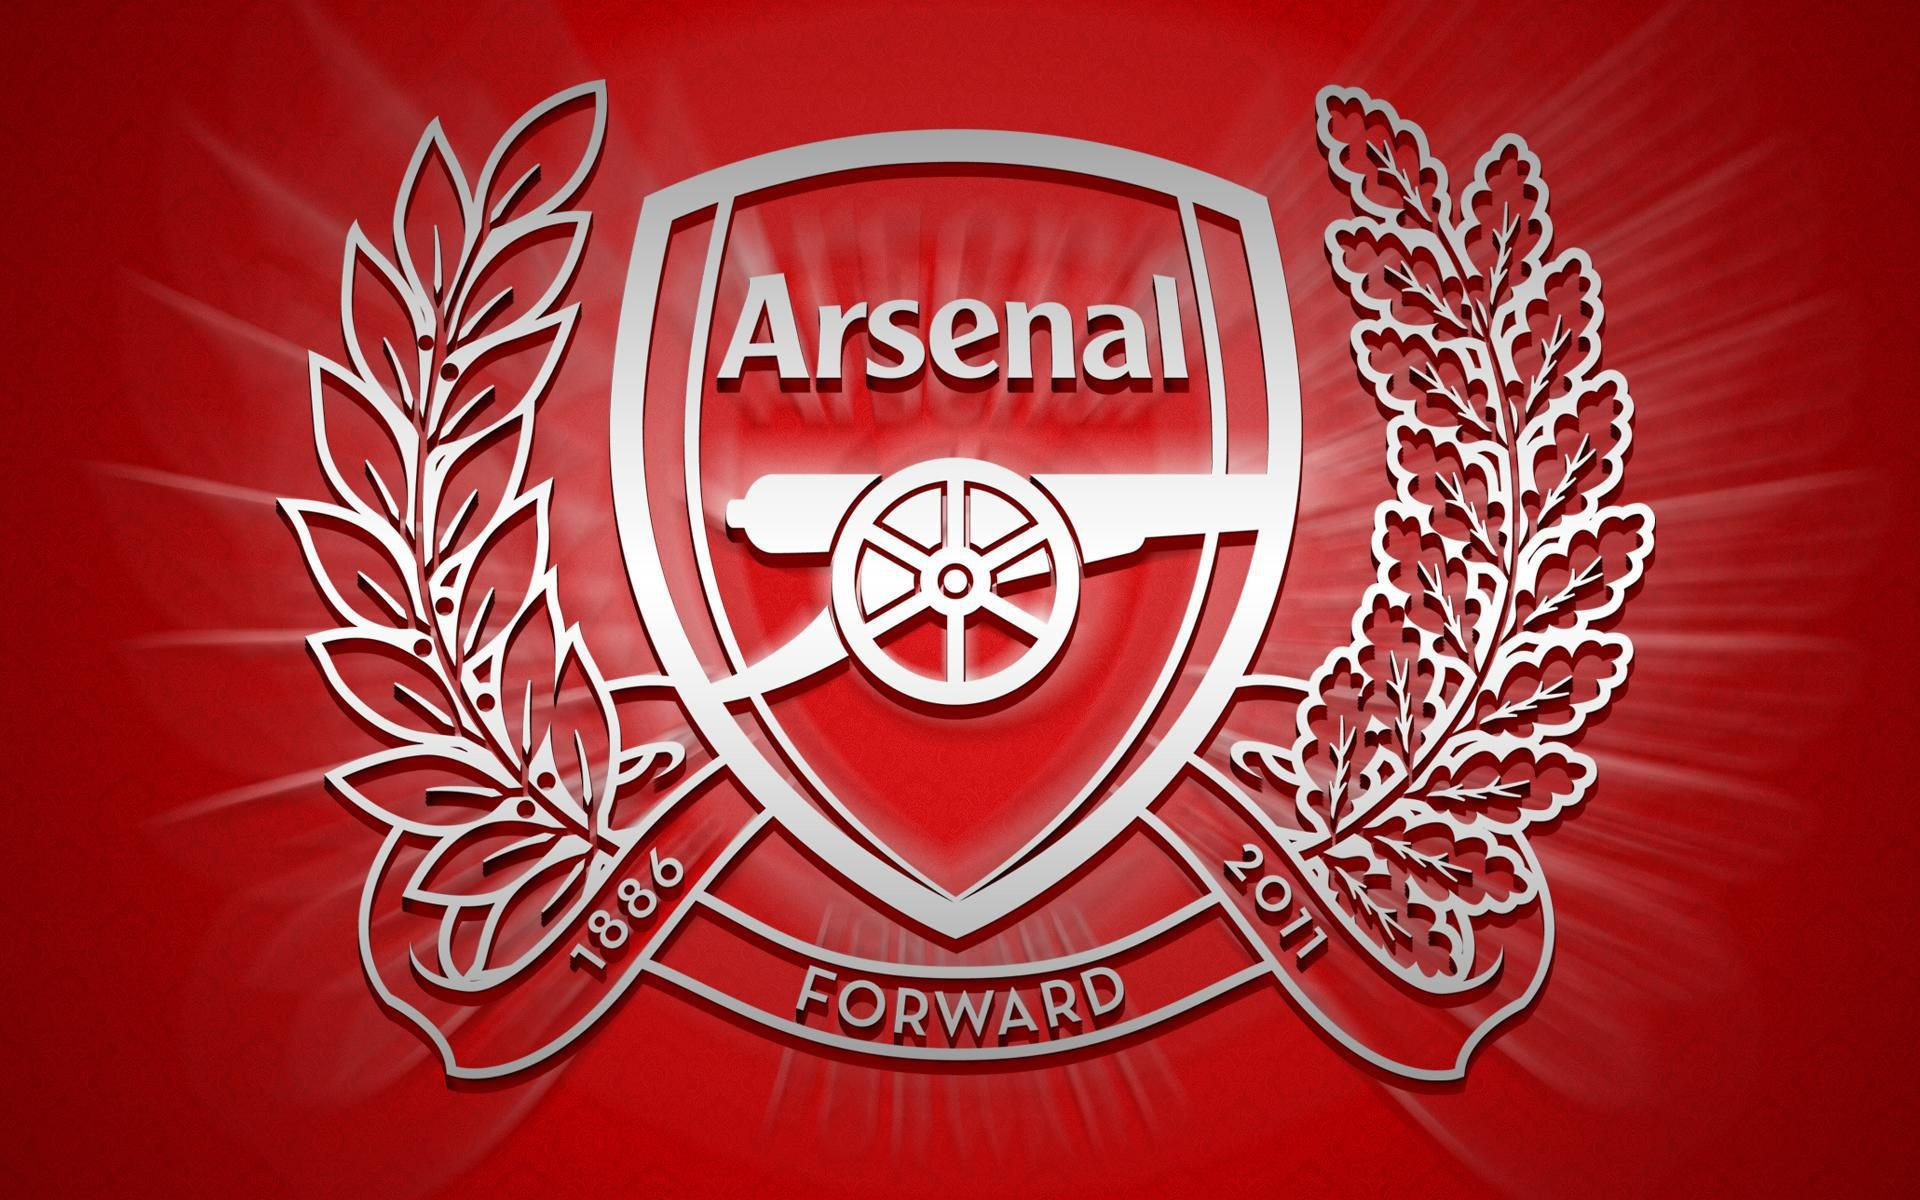 Arsenal images